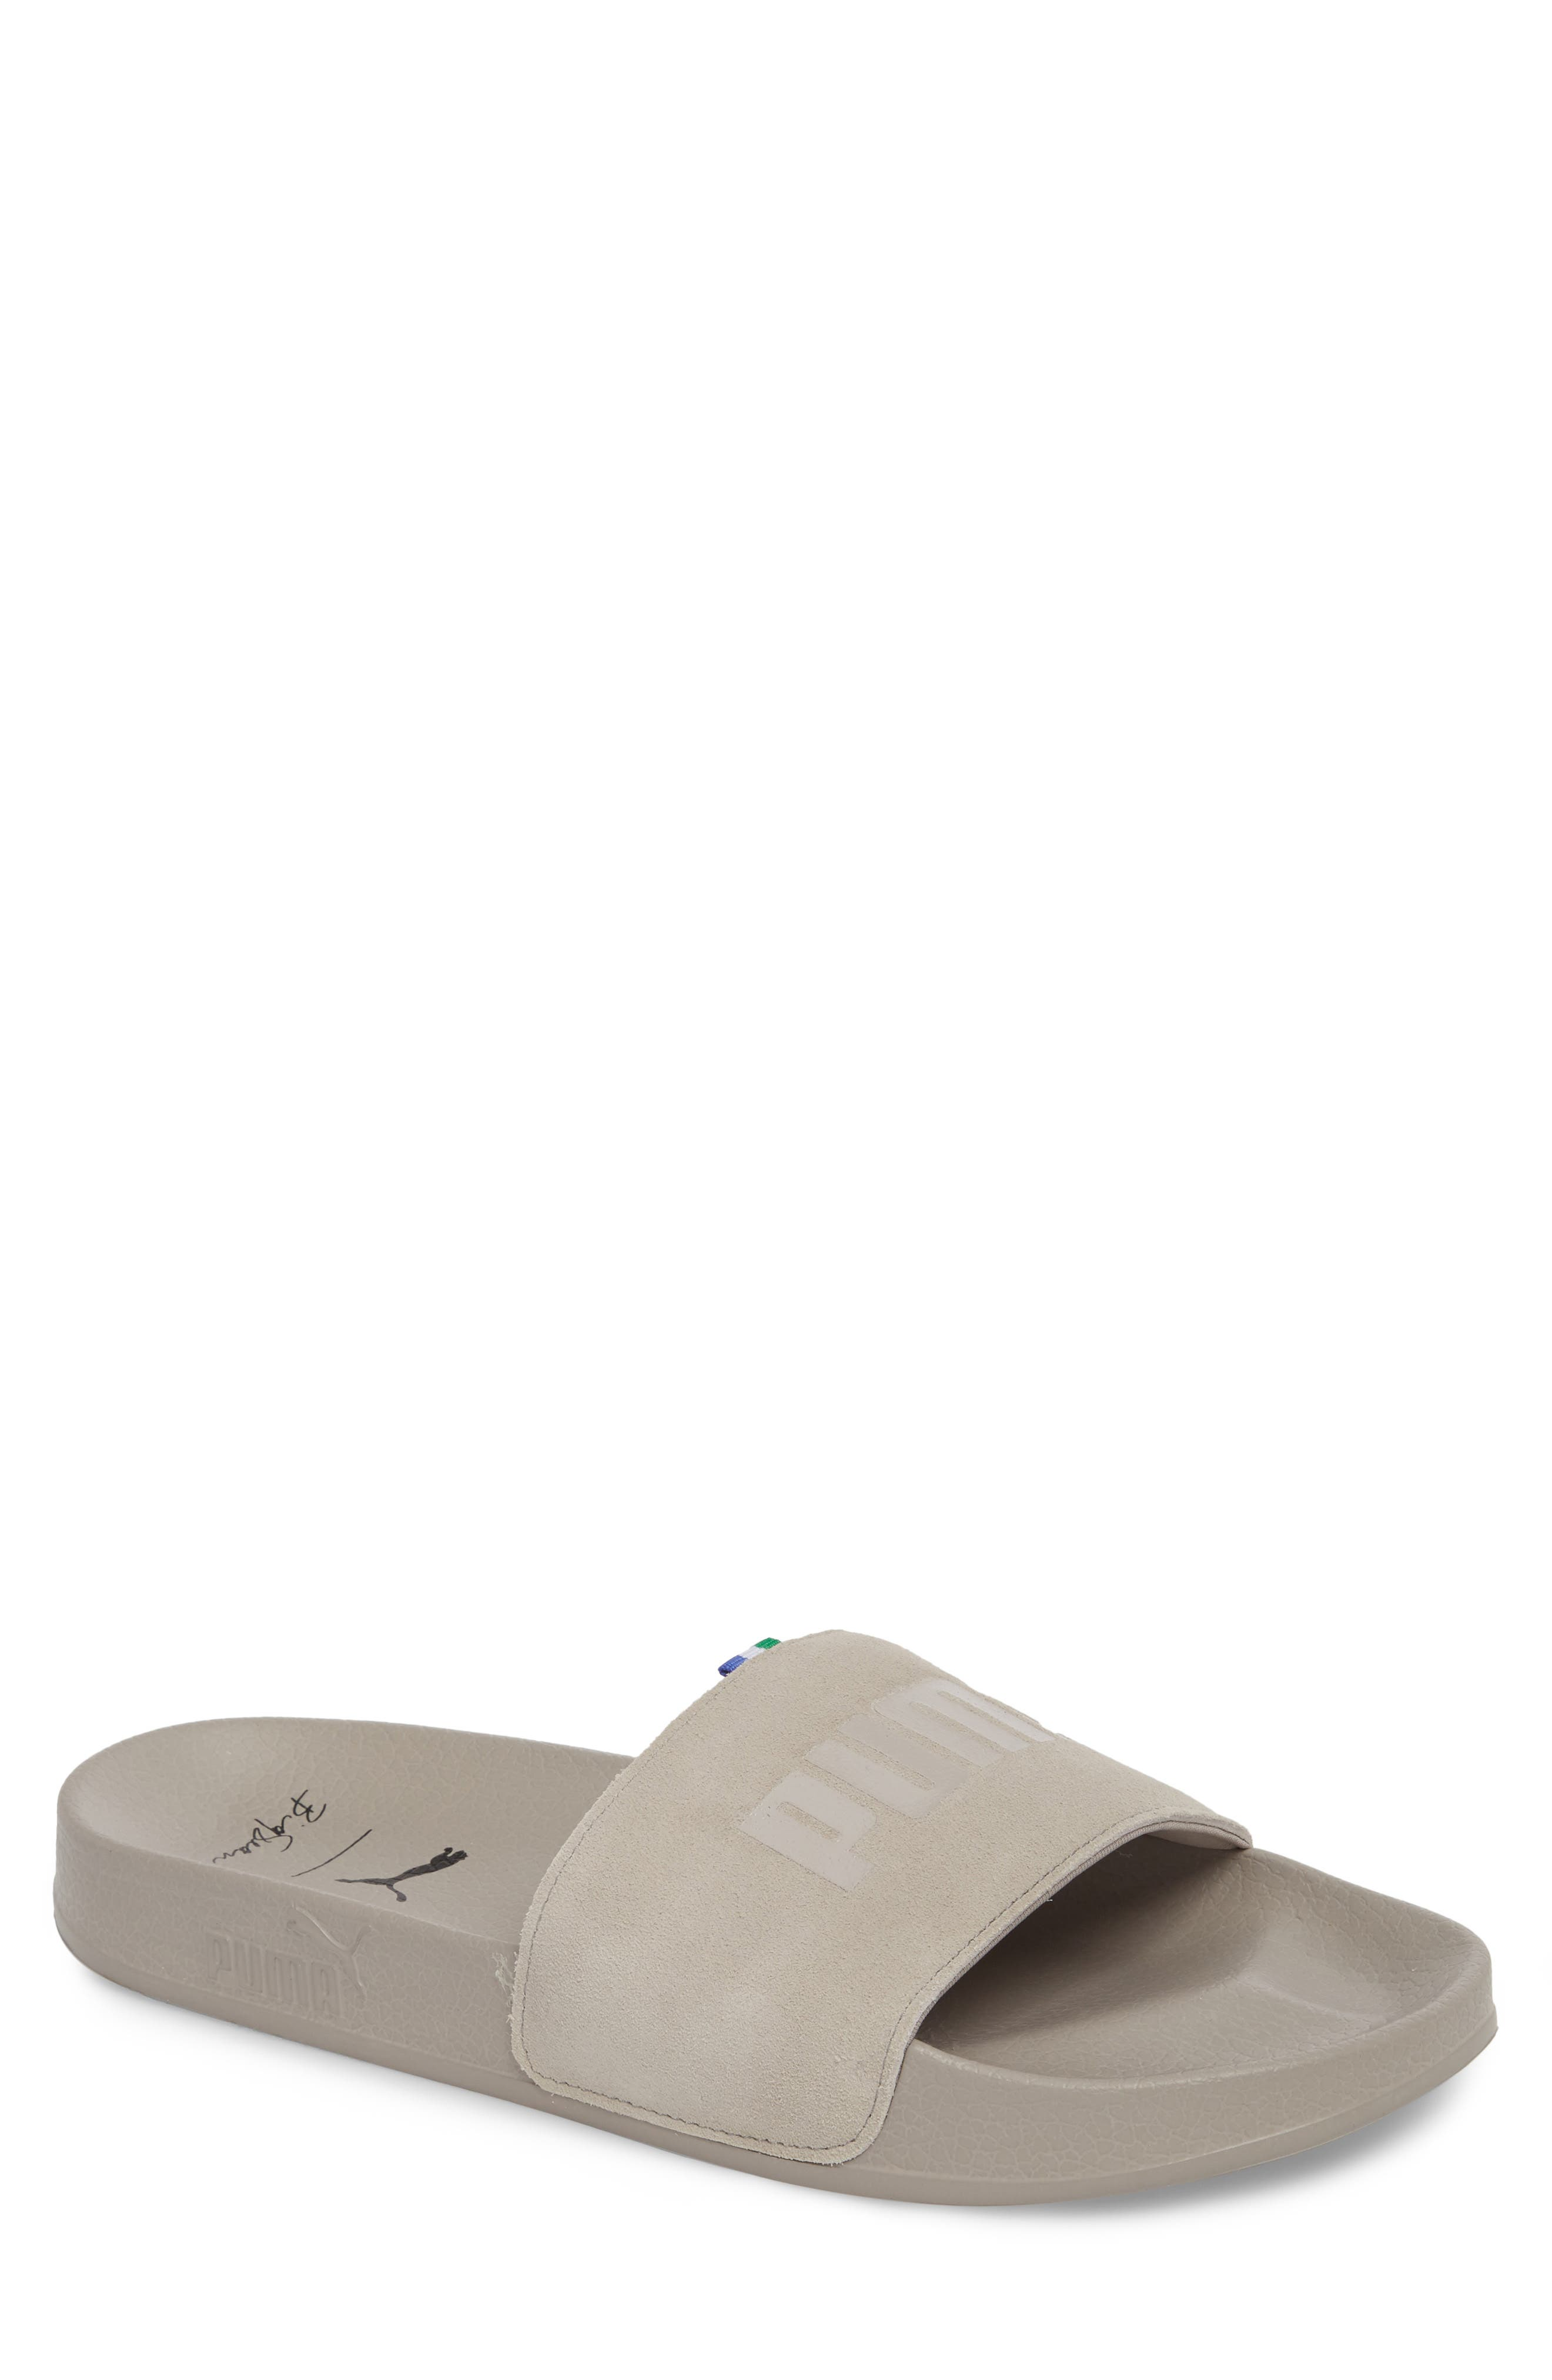 x Big Sean Leadcat Slide Sandal,                         Main,                         color, Whisper White Leather/ Suede